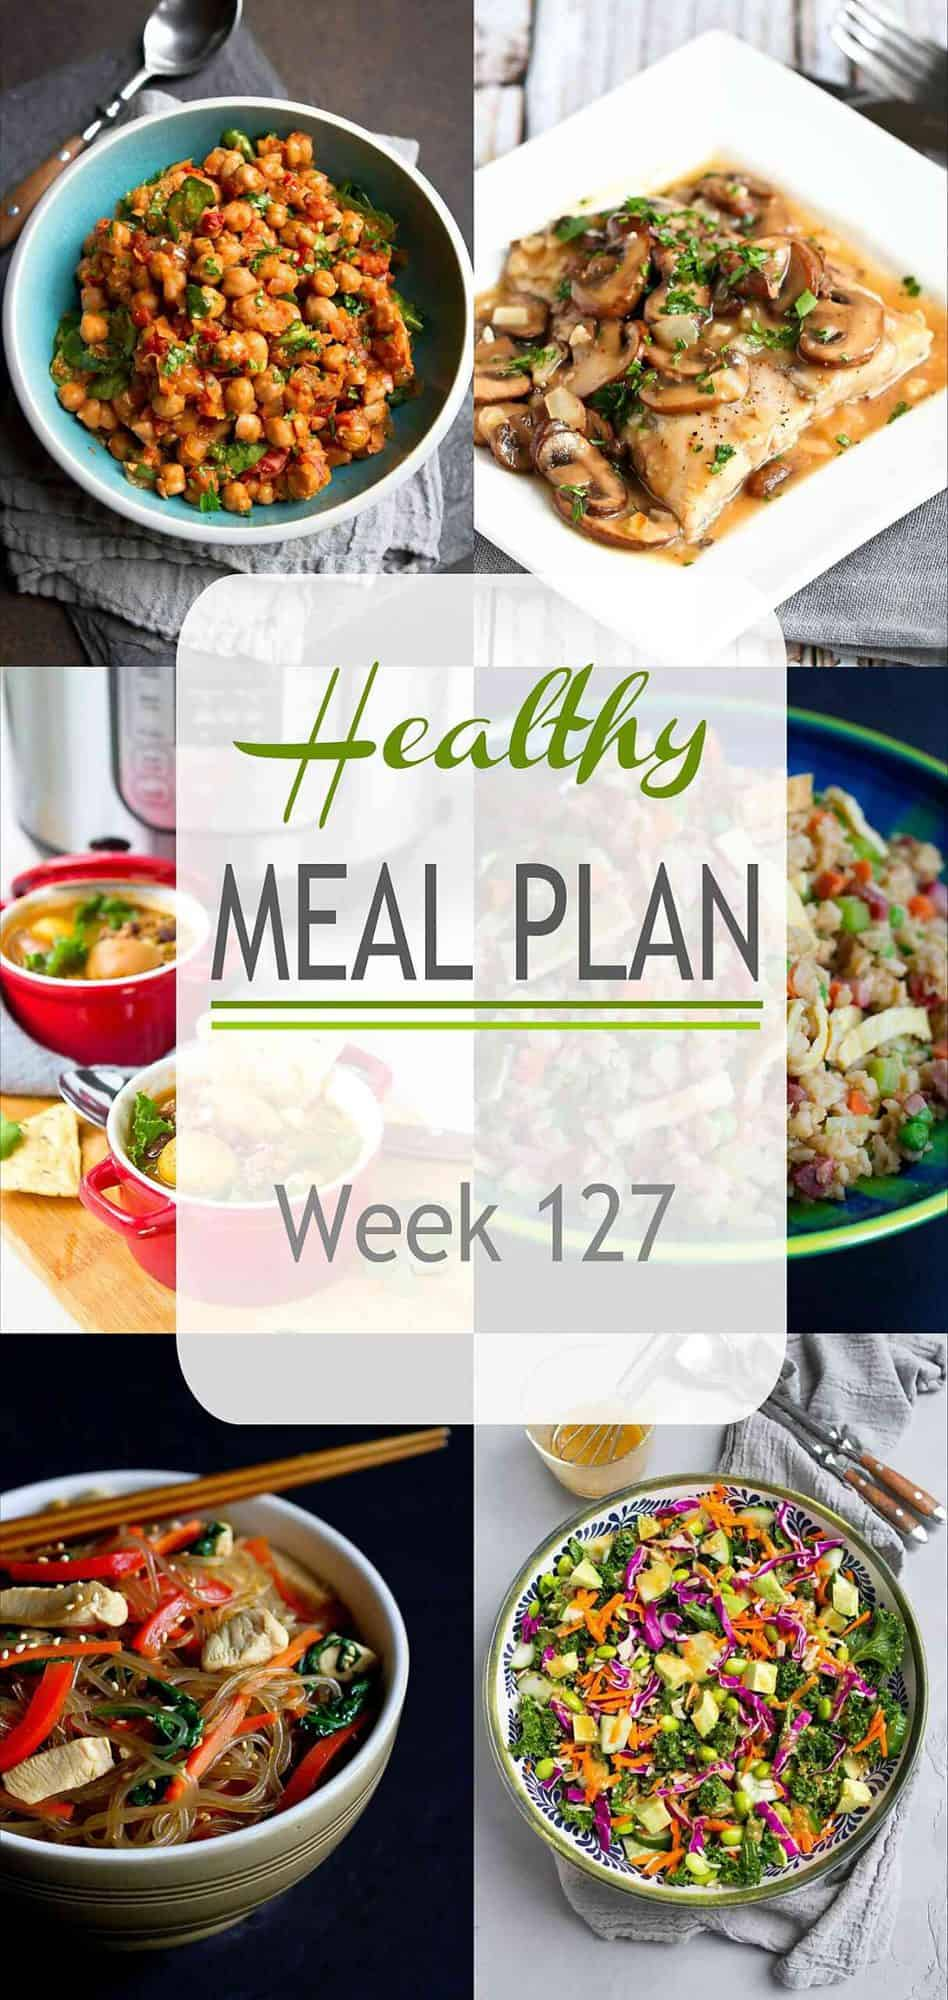 Plenty of new and old favorites in this week's healthy meal plan. A little bit of everything to keep the whole family happy. #mealplanning #mealprep #dinner